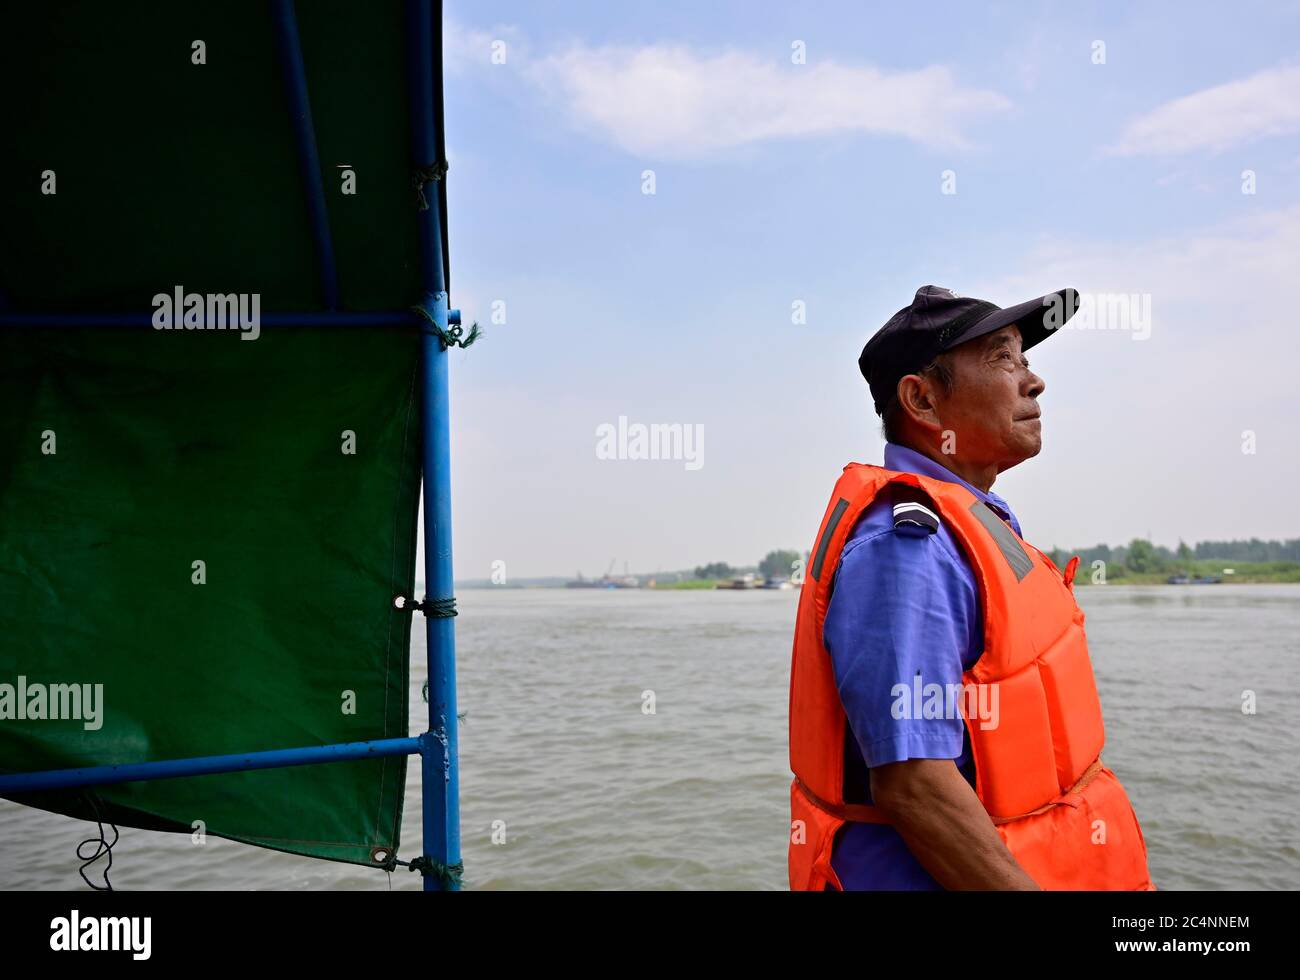 (200628) -- NANCHANG, June 28, 2020 (Xinhua) -- Wu Houchun, an ex-fisherman who works at a Yangtze finless porpoise protection team, takes part in a patrol mission on Poyang Lake in Hukou County, east China's Jiangxi Province, June 8, 2020. Eight of the 11 team members are fishermen-turned finless porpoise protectors who patrol the Poyang Lake on a daily basis. Their missions include dismantling illegal fishing facilities and preventing unlawful activities that damage the Poyang Lake's fisheries resources. China began a 10-year fishing moratorium from the beginning of this year in 332 conserva Stock Photo